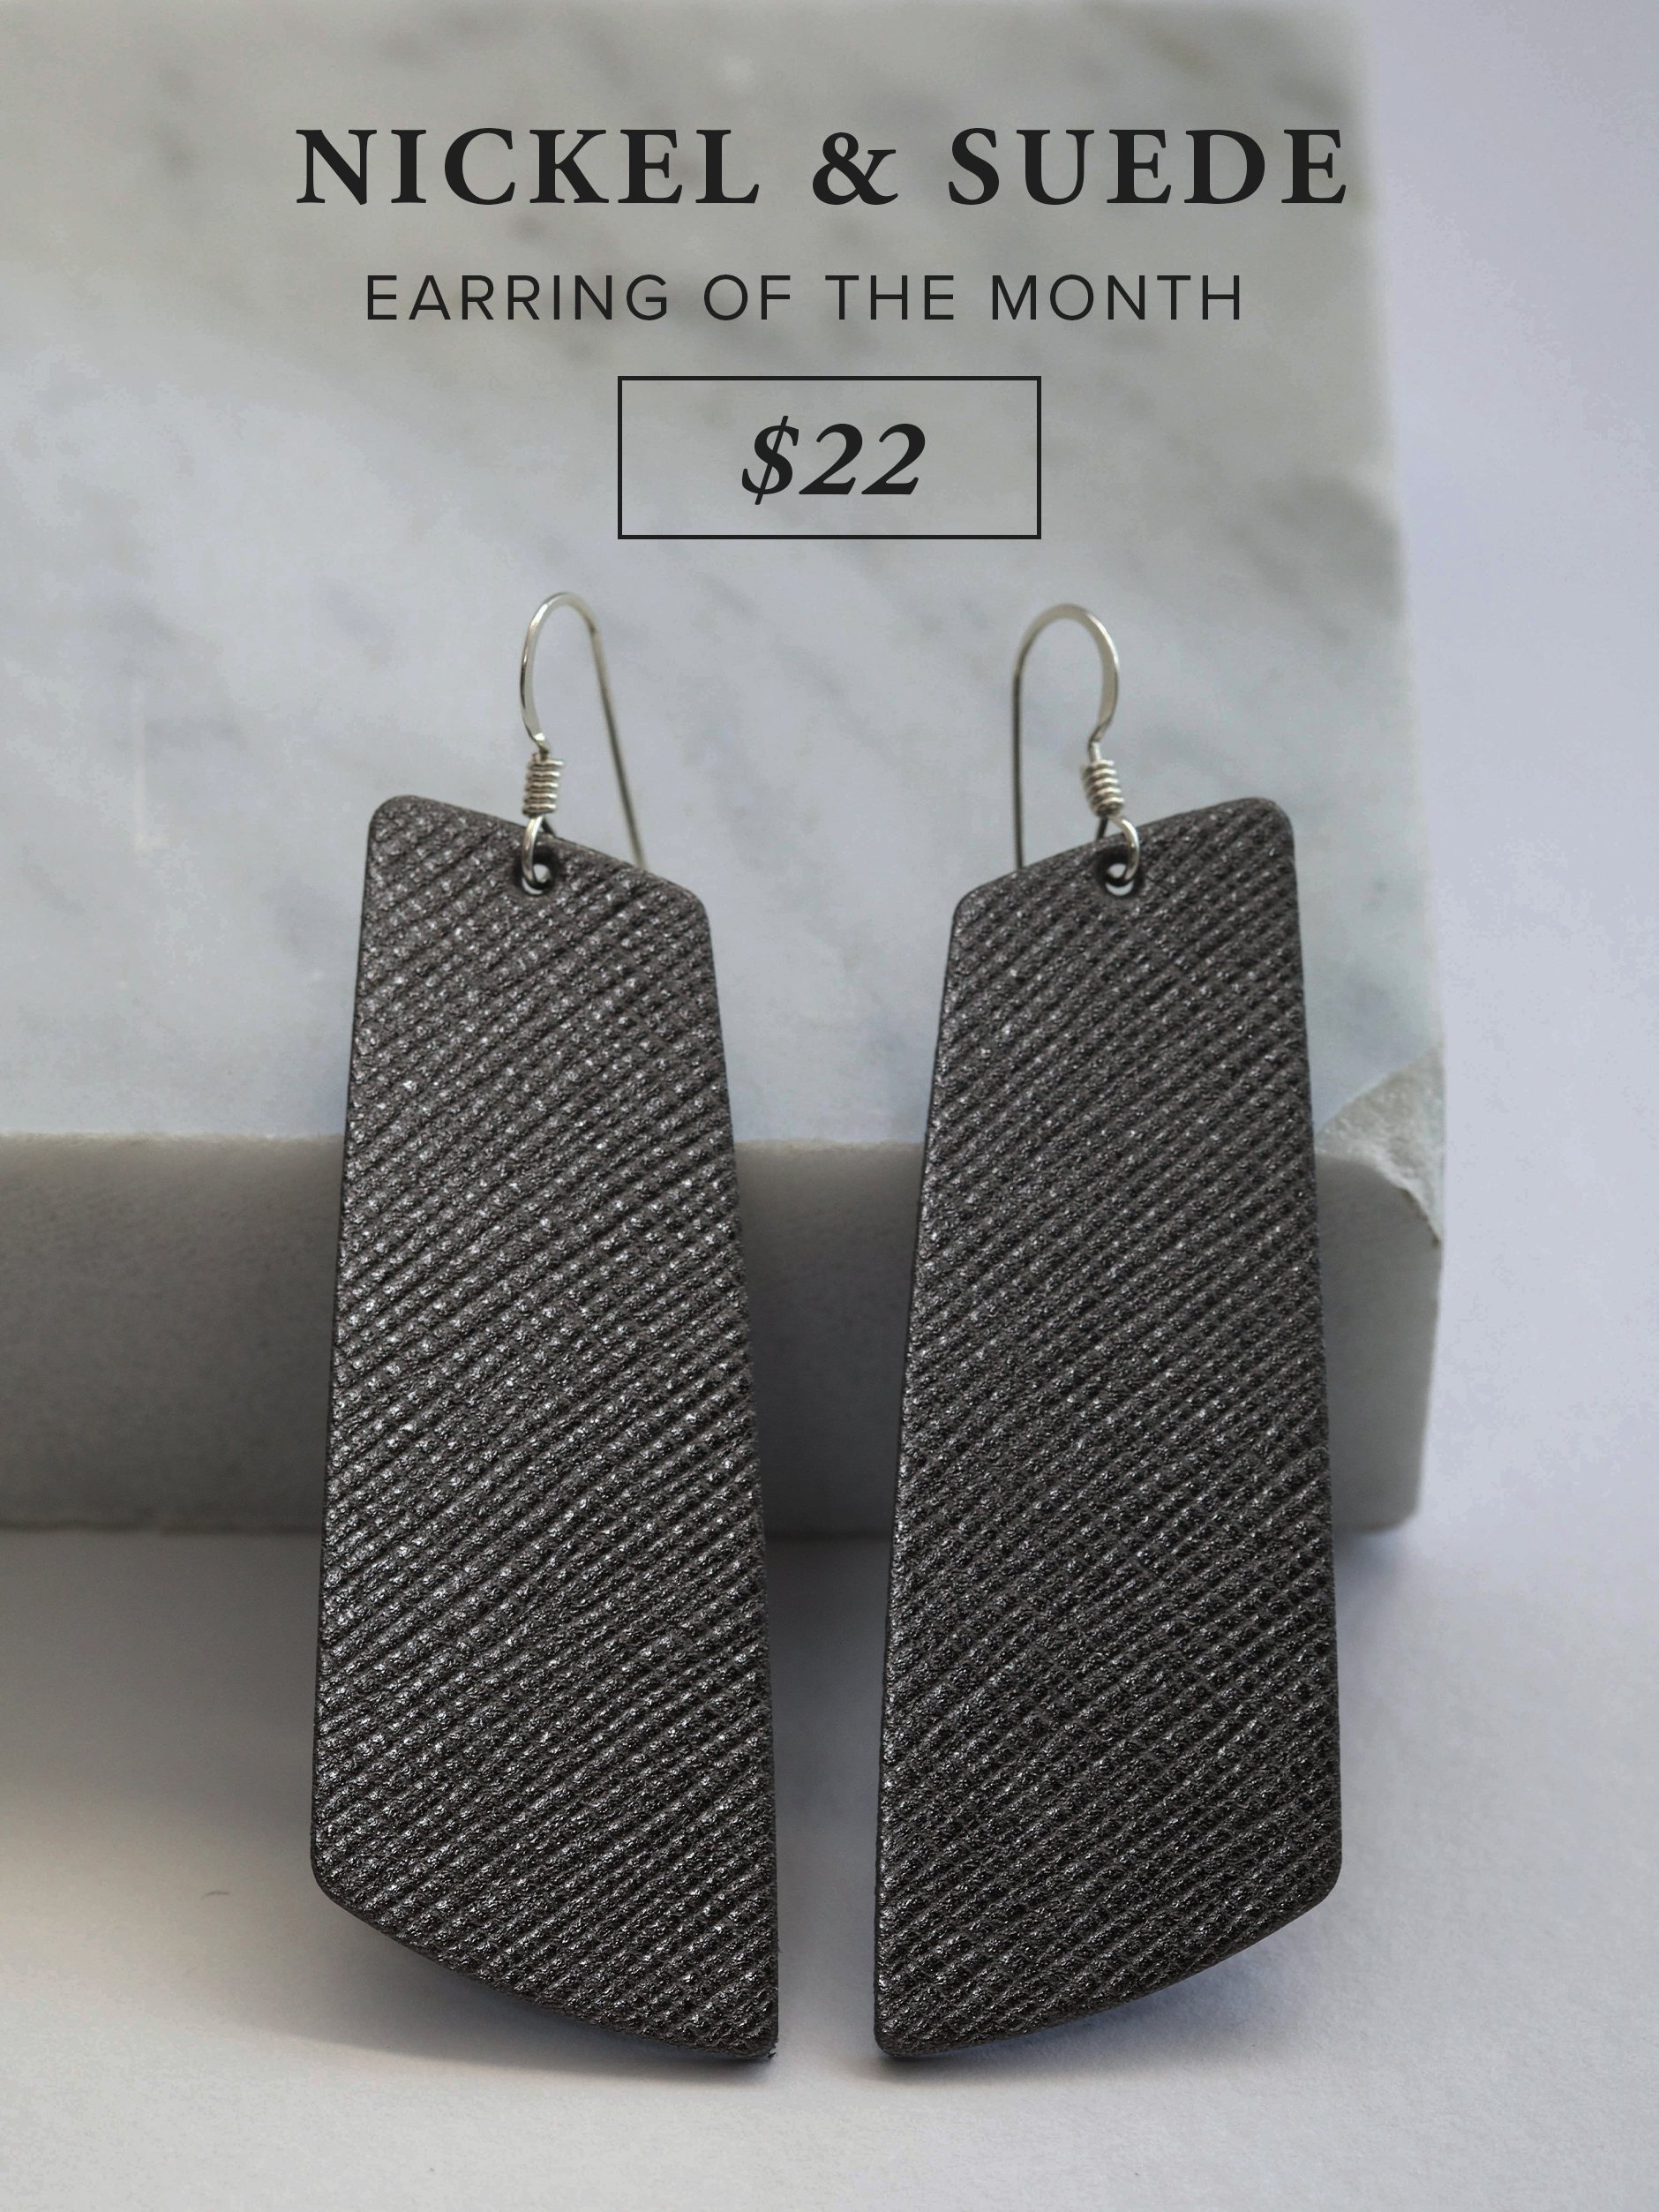 Nickel & Suede Earring of the Month - Gunmetal Gem